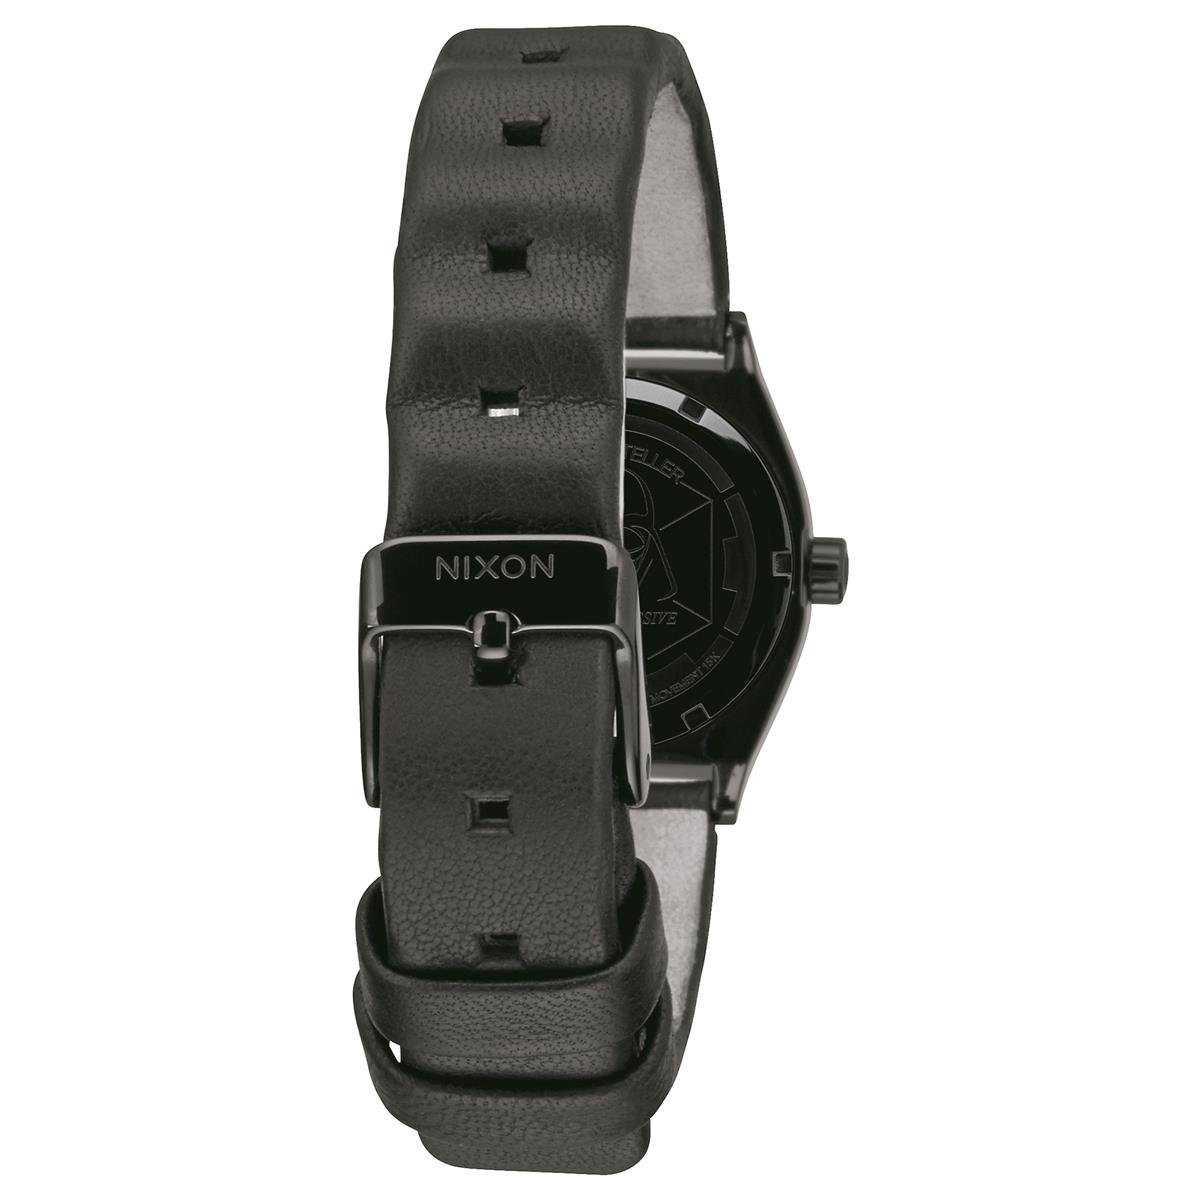 Amazon.com: Nixon Mens Time Teller SW Vader Black A045SW2244 Black Leather Quartz Watch: Nixon: Watches